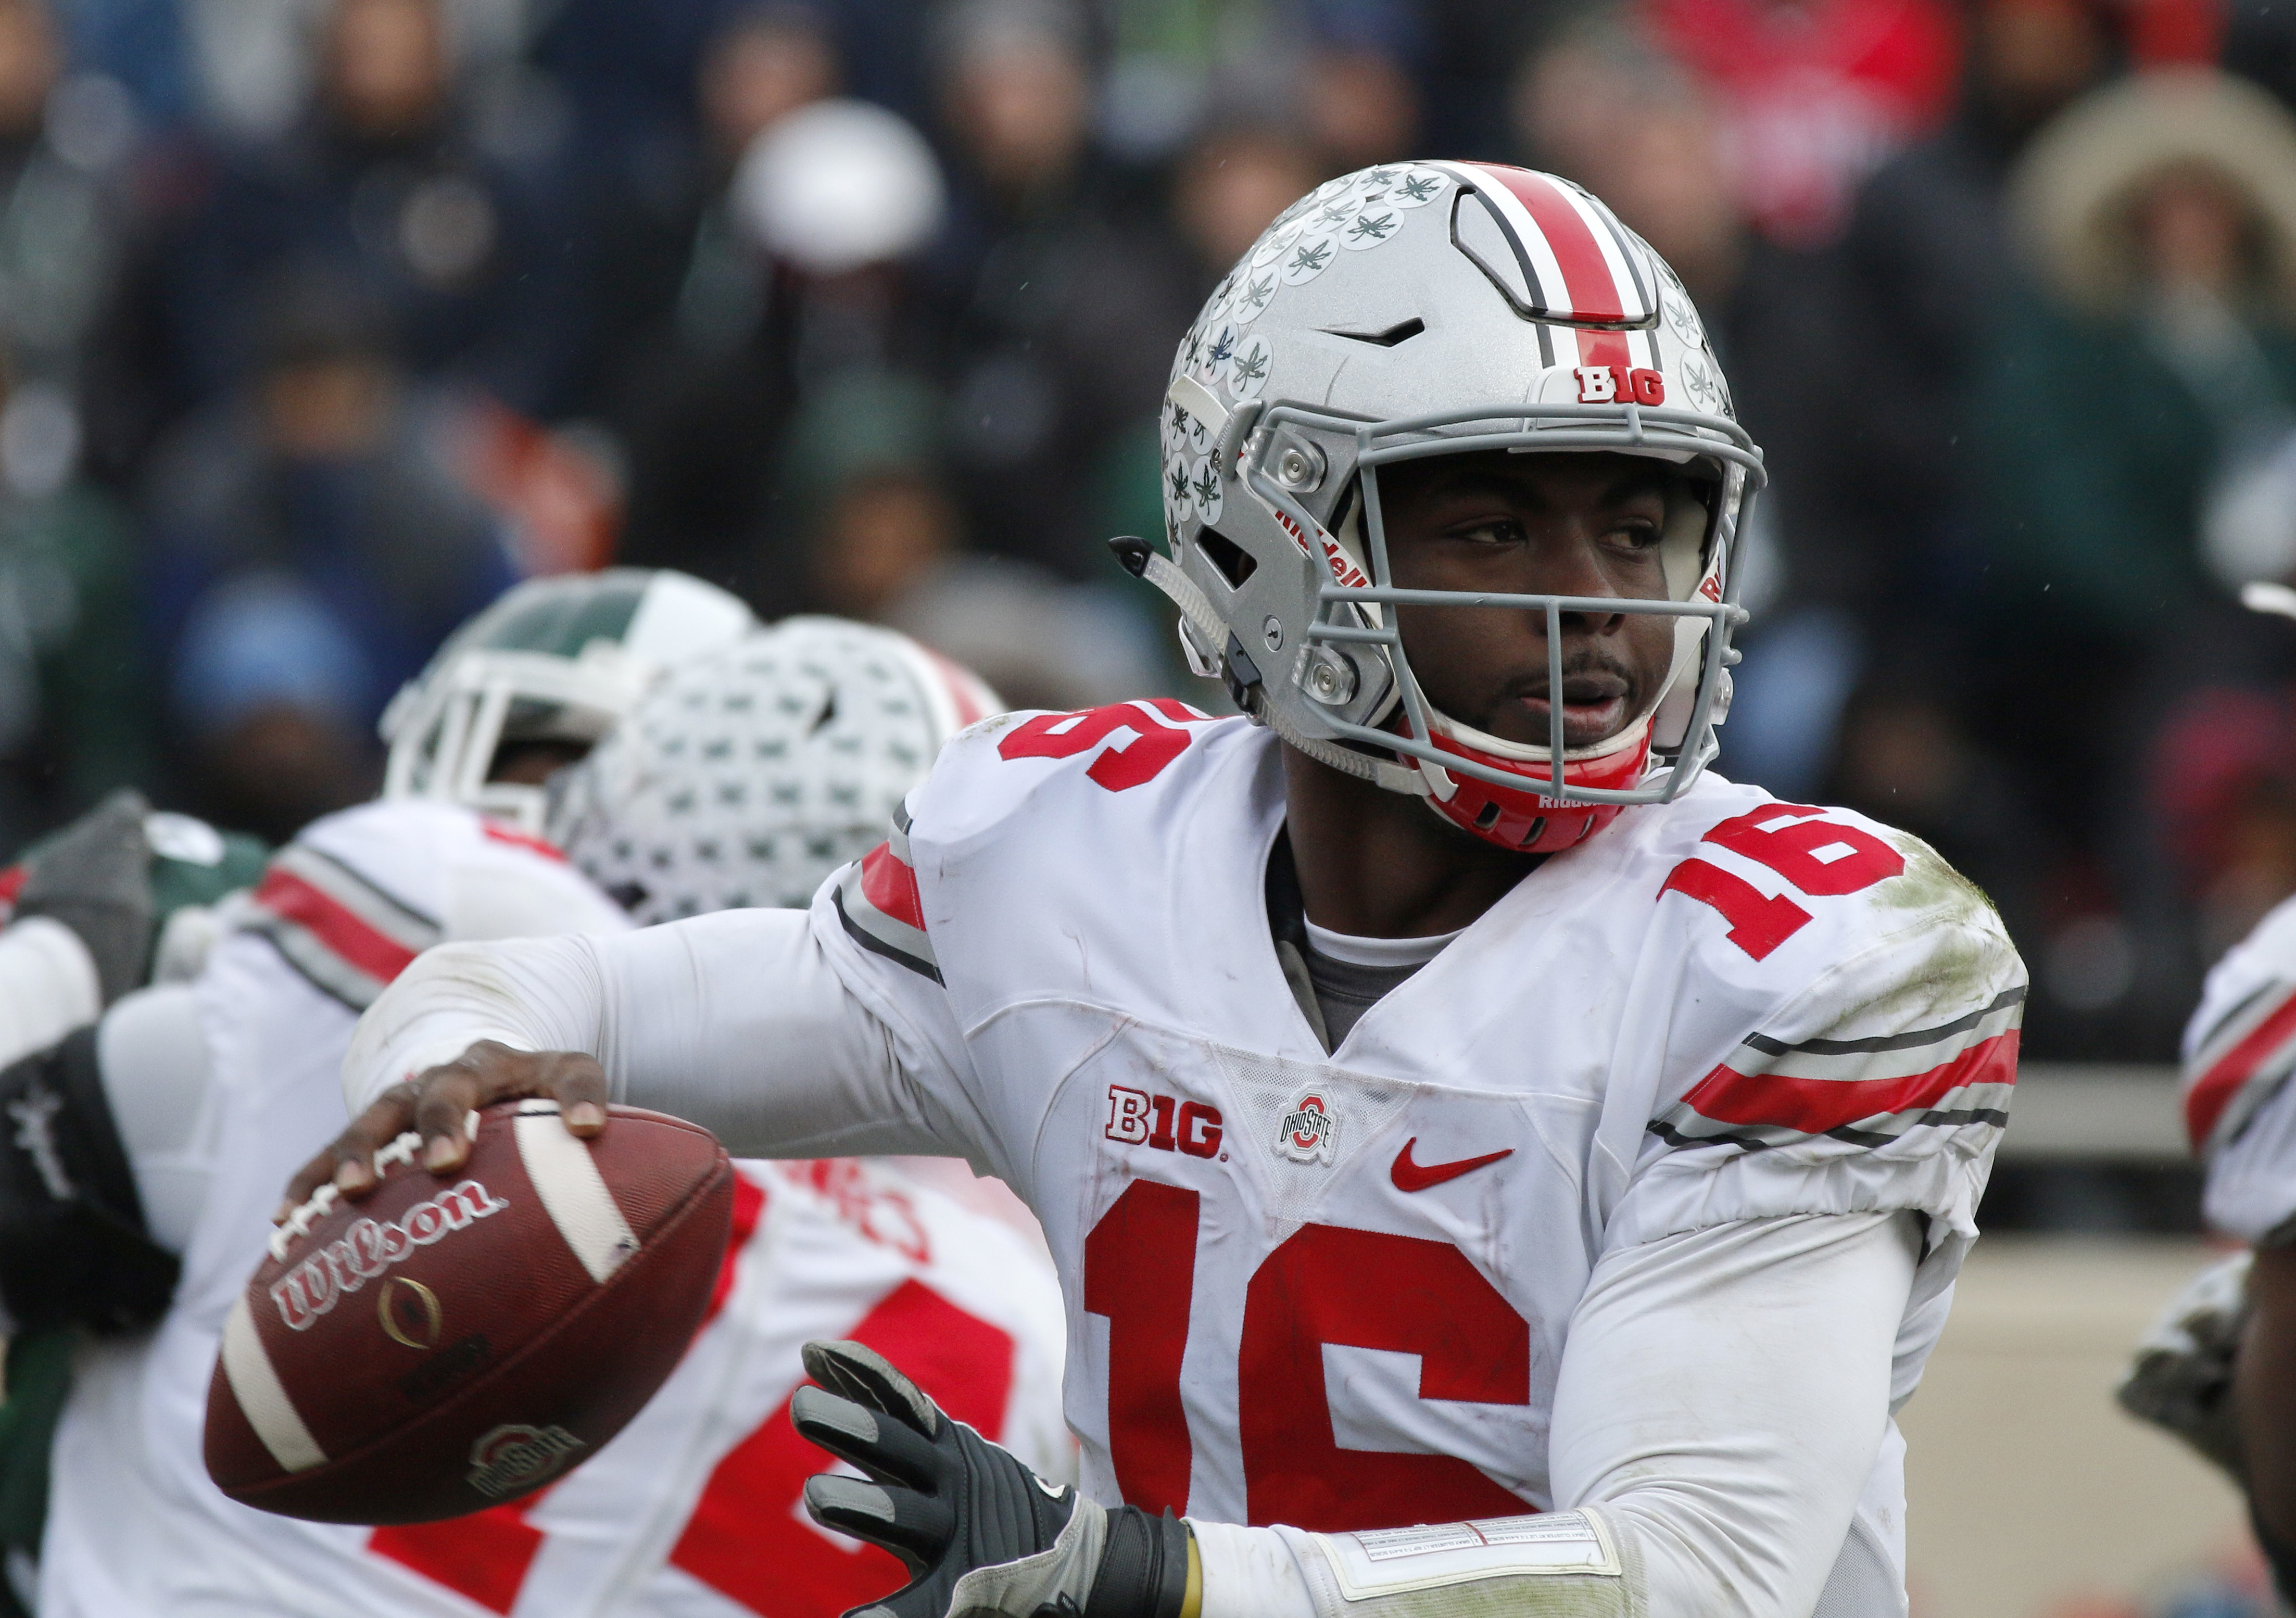 Ohio State quarterback J.T. Barrett looks to throw against Michigan State during the fourth quarter half of an NCAA college football game, Saturday, Nov. 19, 2016, in East Lansing, Mich. Ohio State won 17-16. (AP Photo/Al Goldis)